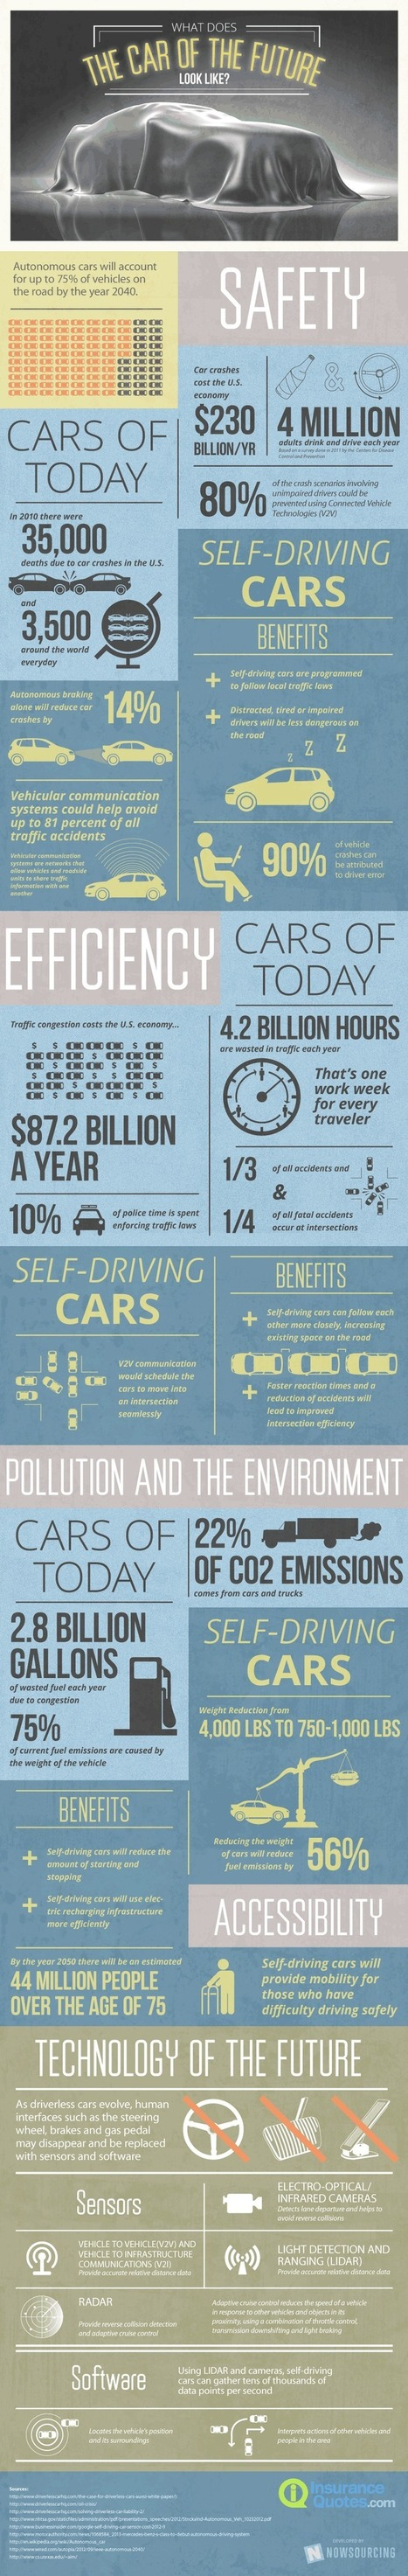 Infographic: The Car of the Future | Social Network for Logistics & Transport | Scoop.it